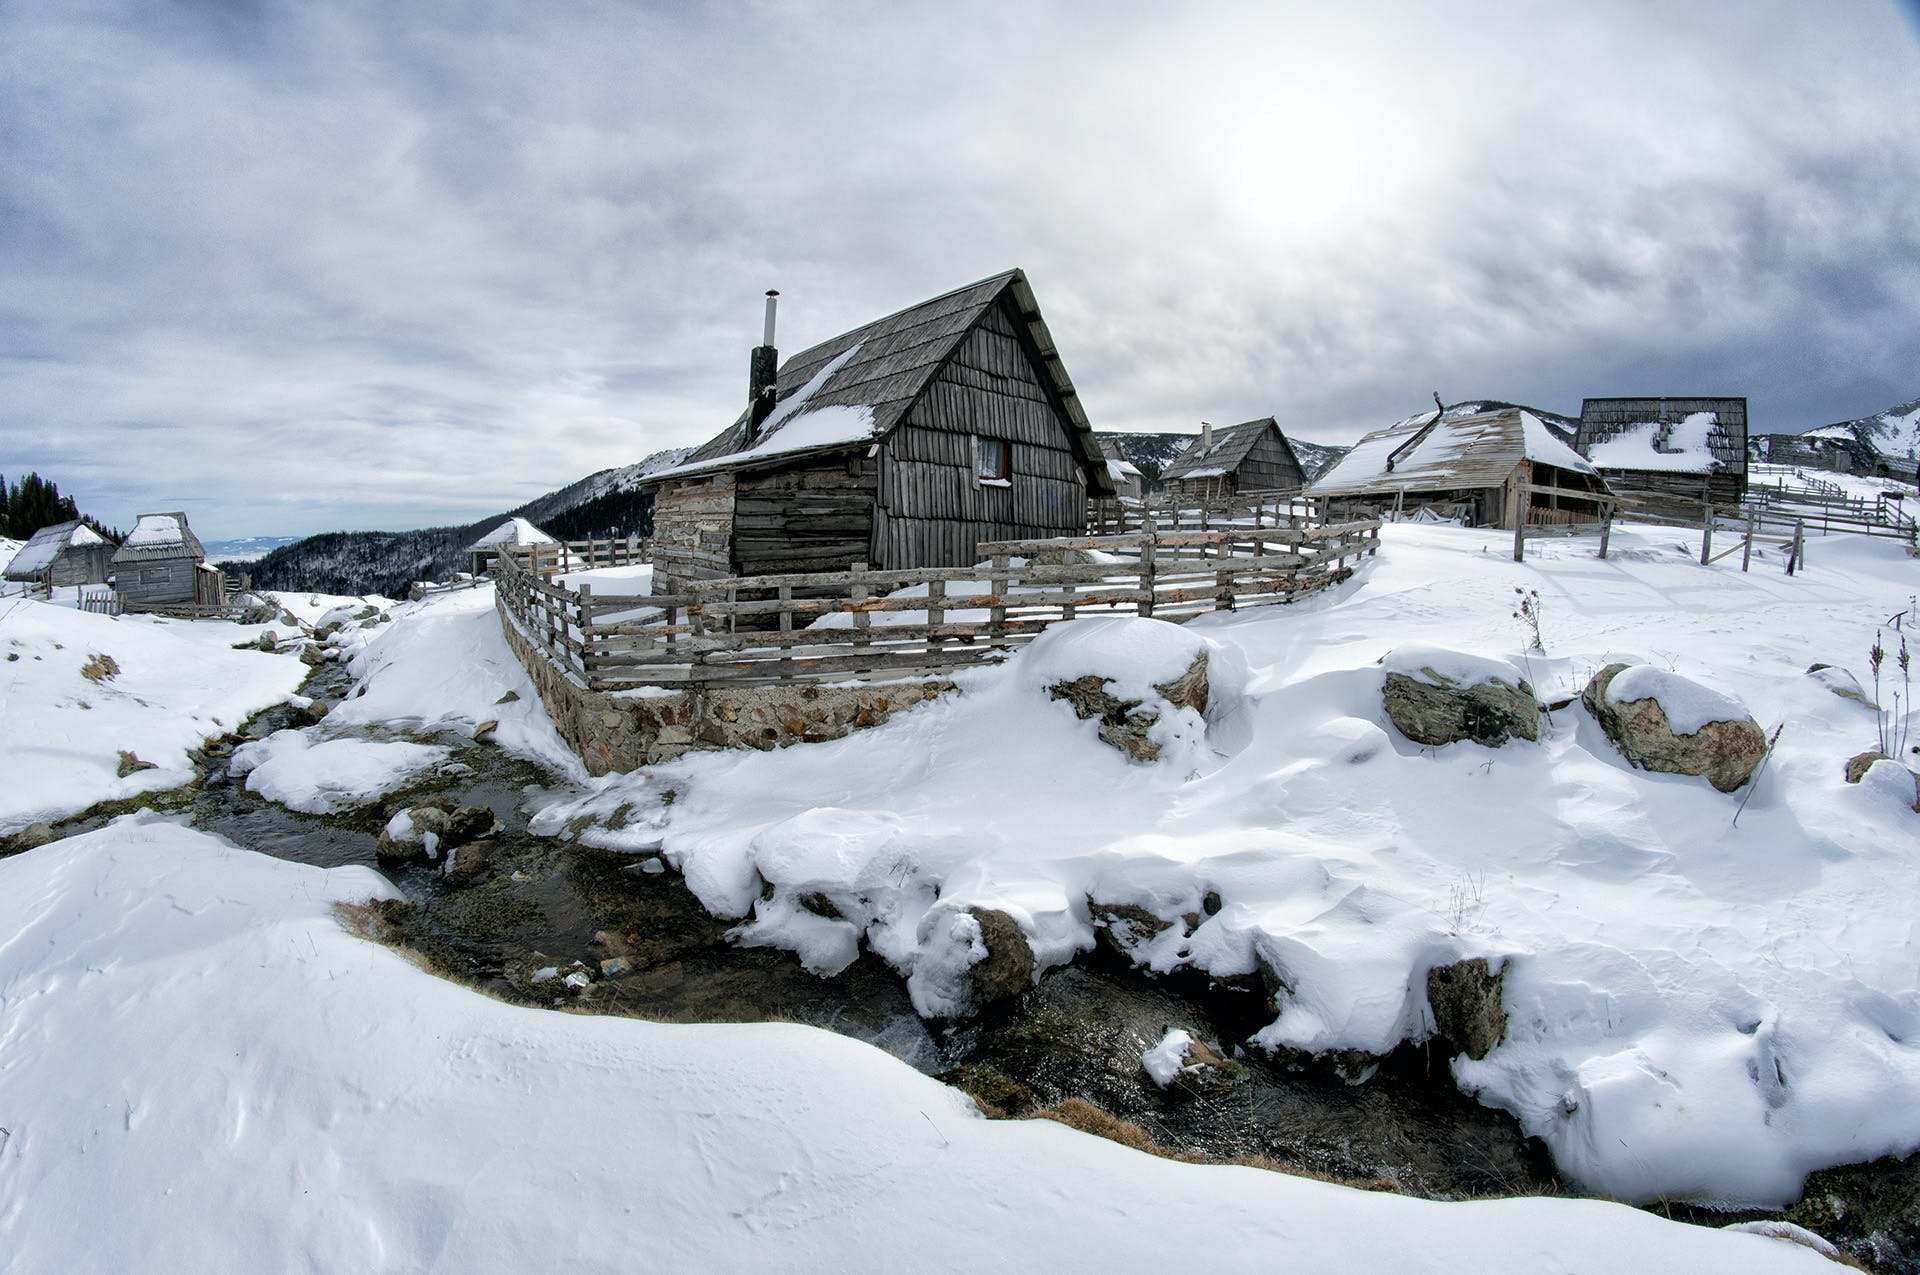 Black Wooden House Surrounded by Snow Under White Clouds